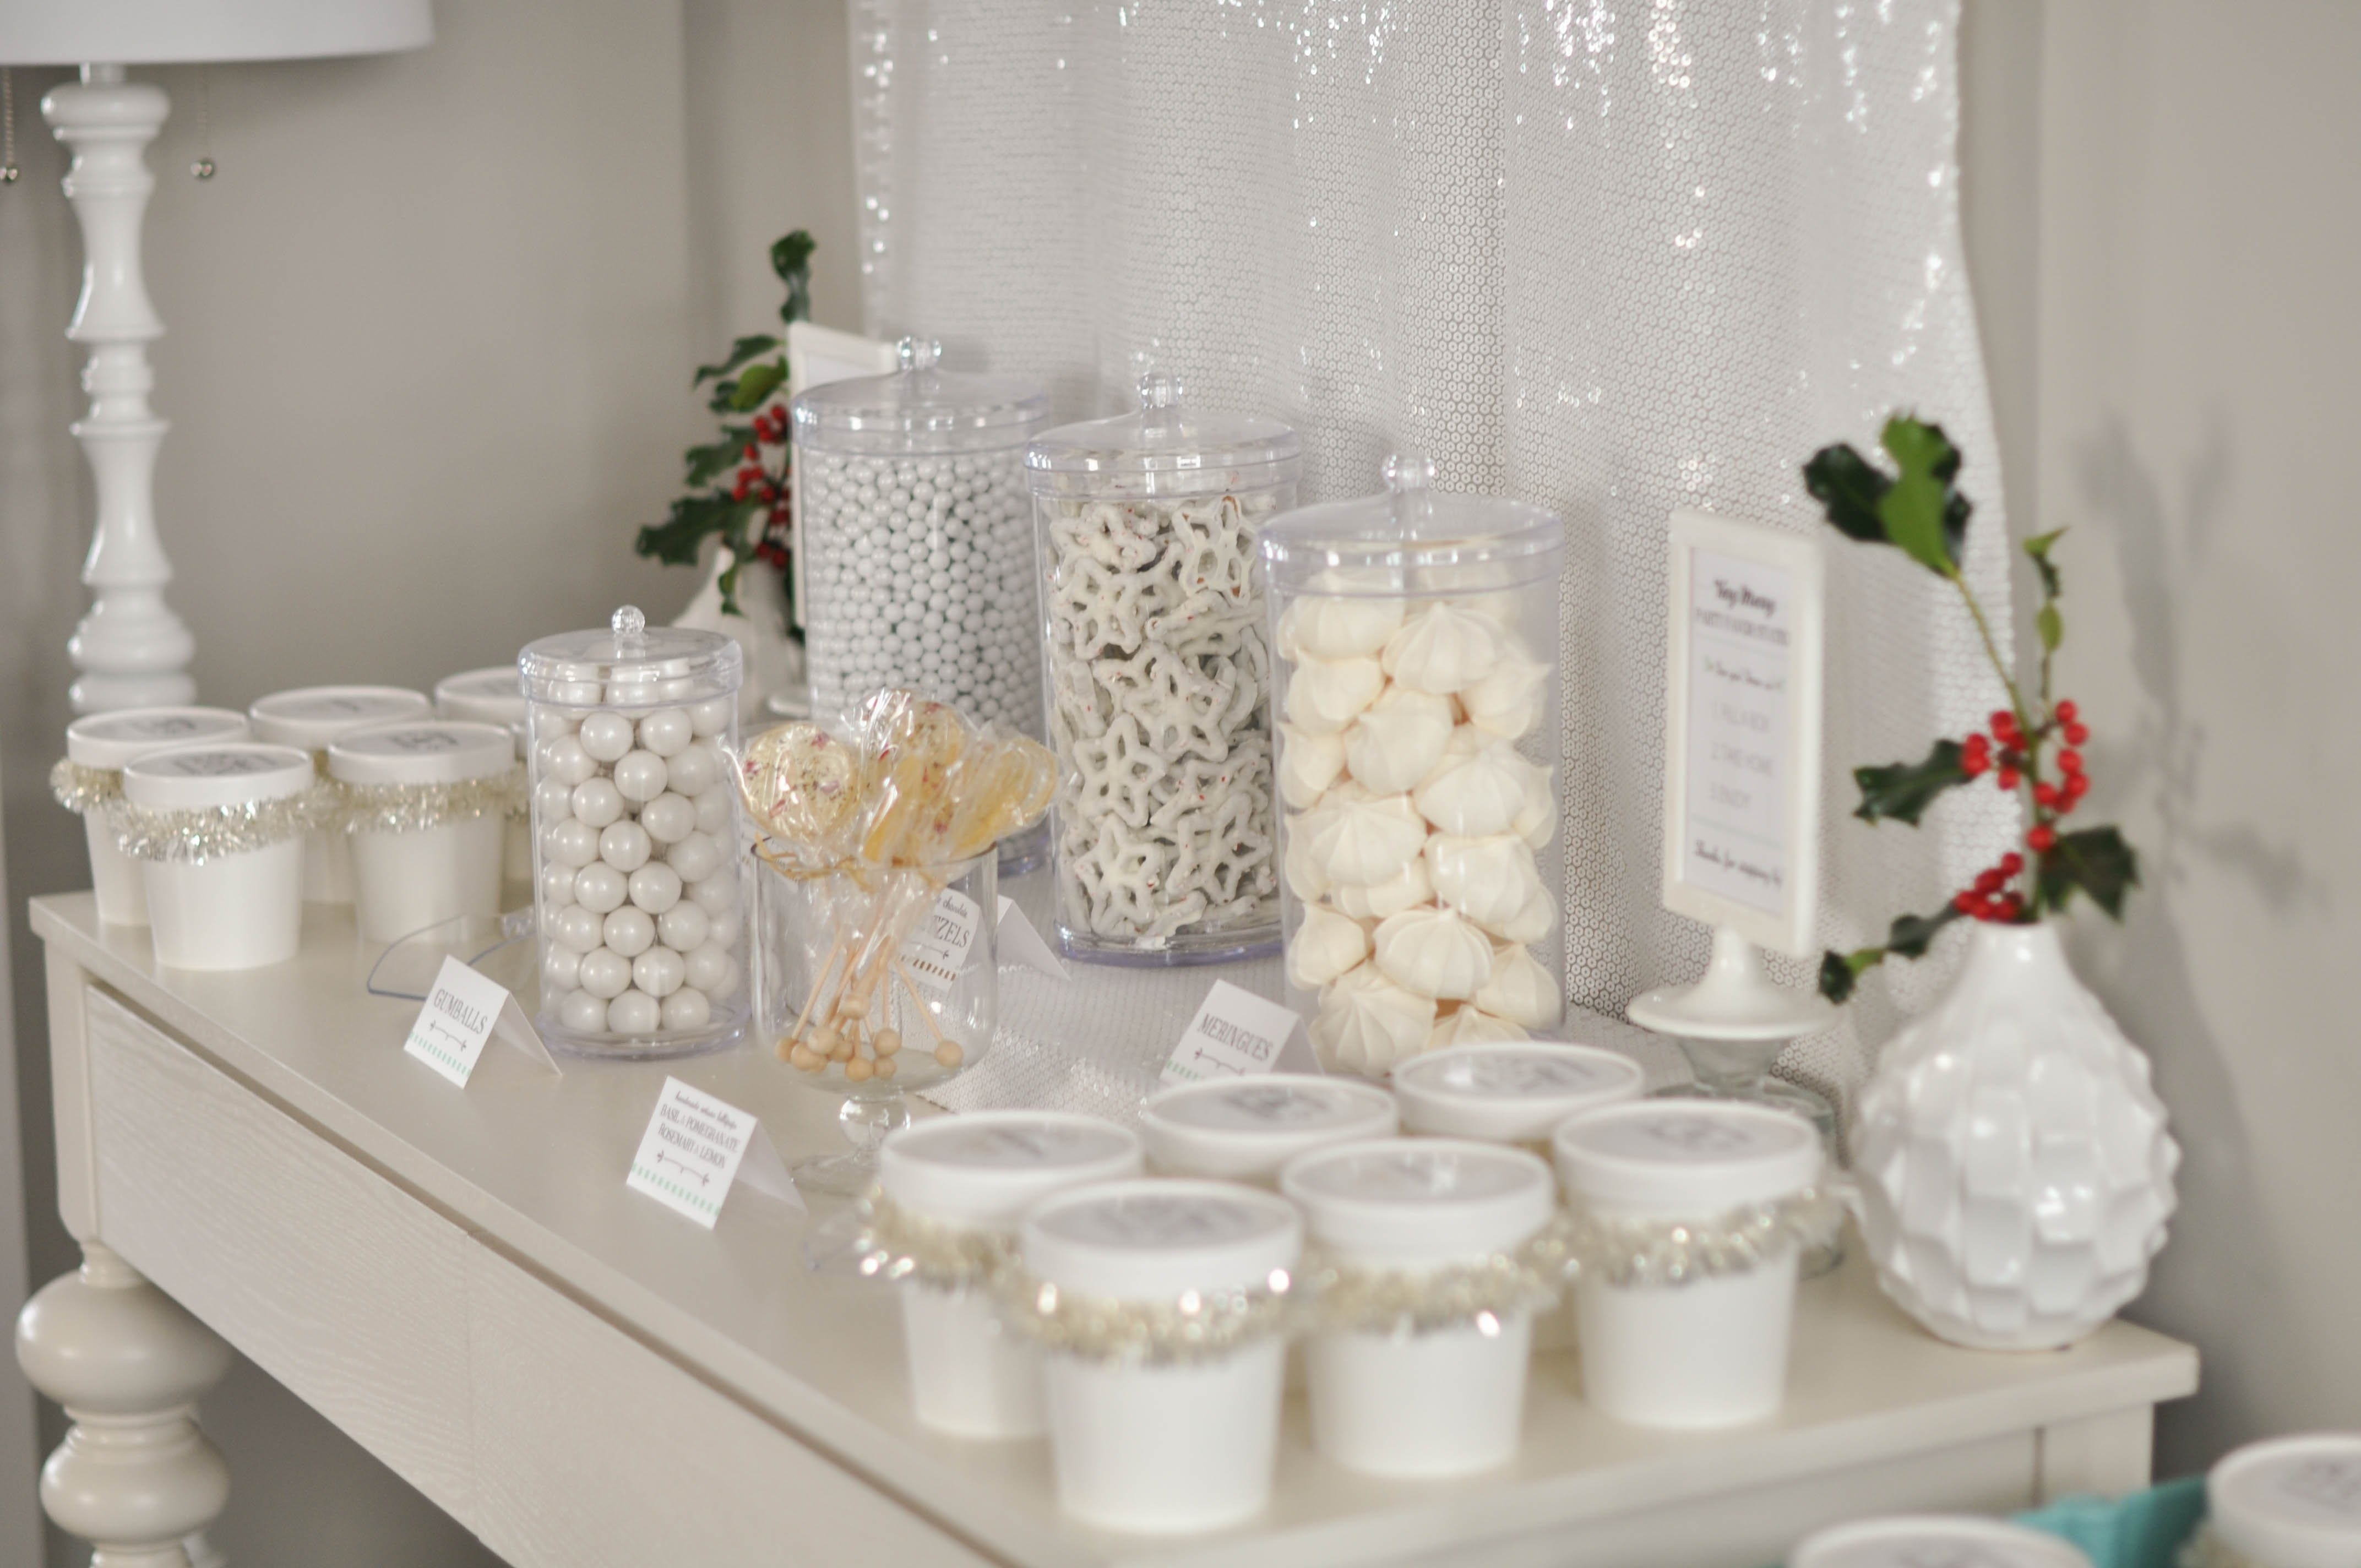 10 Amazing All White Baby Shower Ideas ideas boy baby shower candy bar buffet para game unbelievable stock 2020